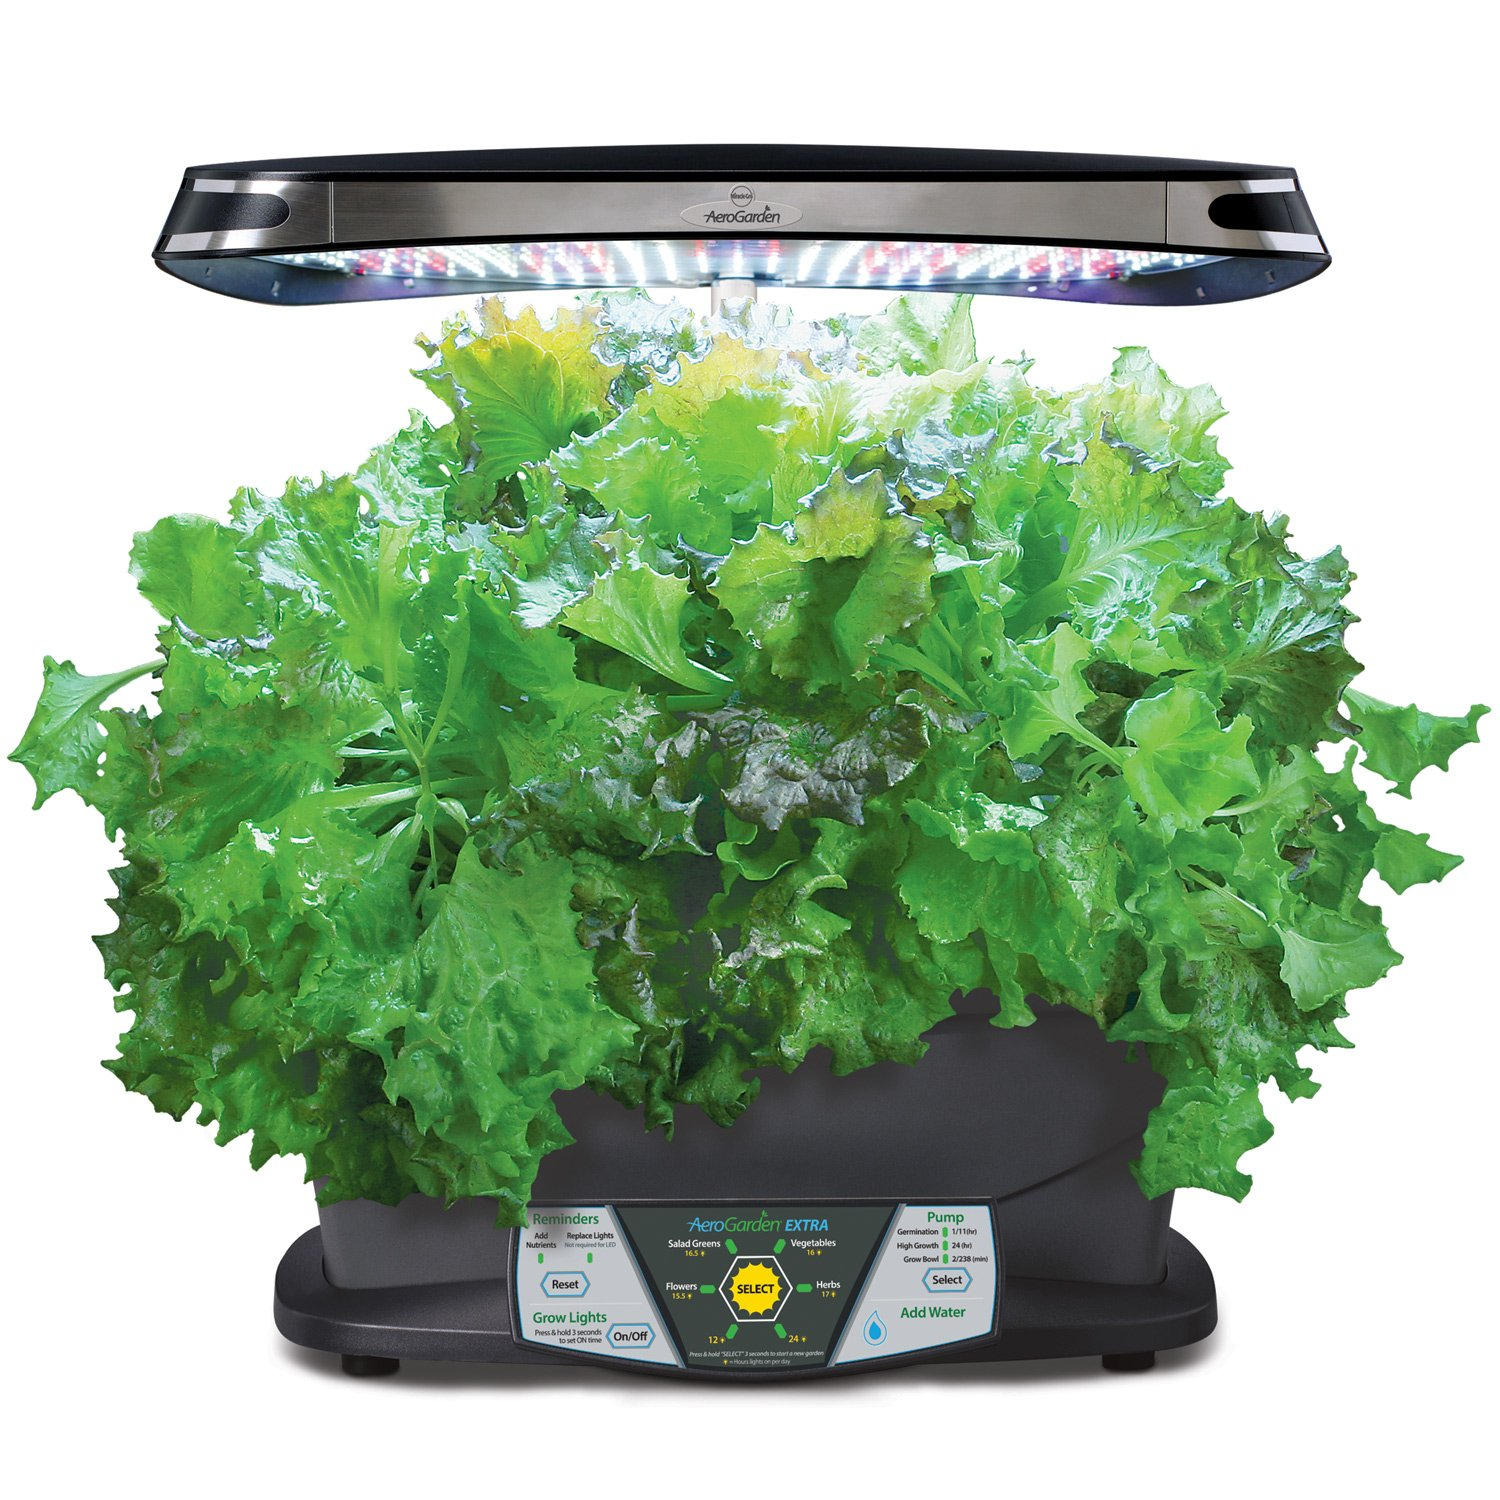 Led Kitchen Garden Amazoncom Miracle Gro Aerogarden Extra Led With Gourmet Herb